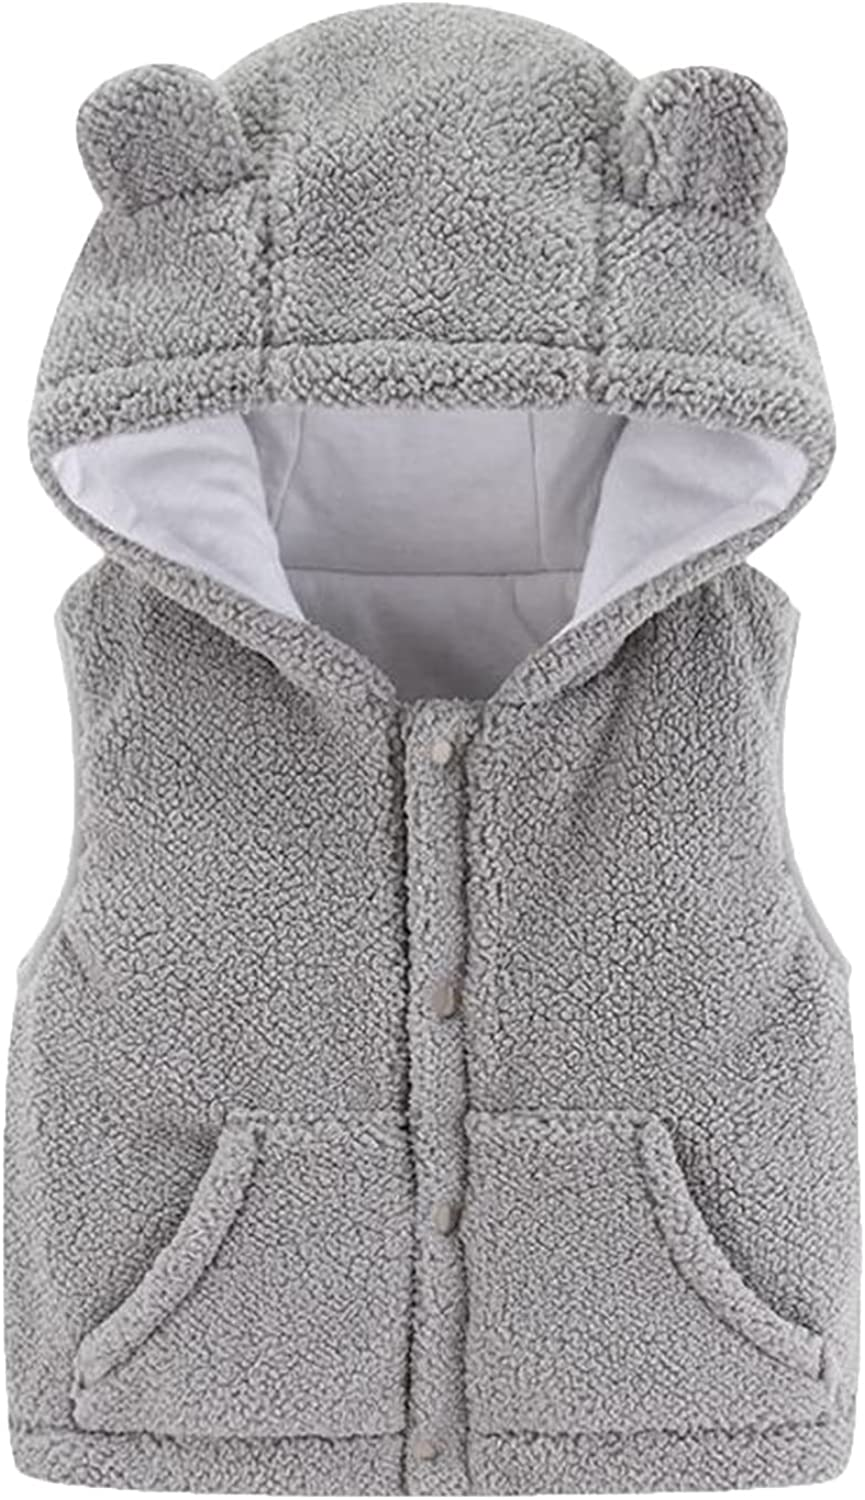 Cheap Kids Warm Jacket Toddler Girls Boys Vest Max 77% OFF Waistcoat Outdoor Solid